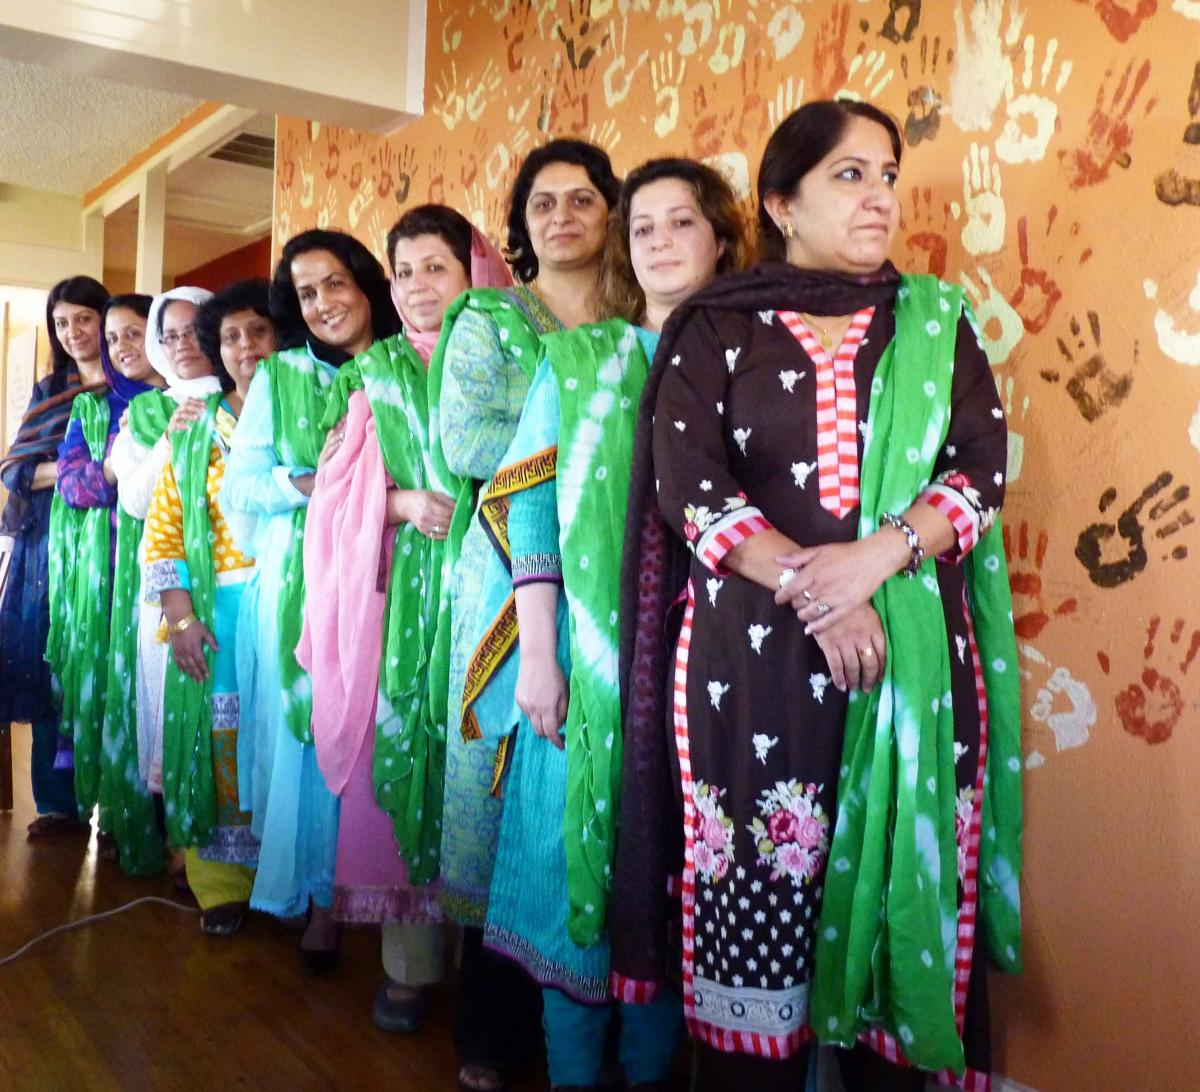 pakistani women essays Free papers and essays on culture of vietnam and pakistan the way to show respect and devotion towards women pakistani does believe in.